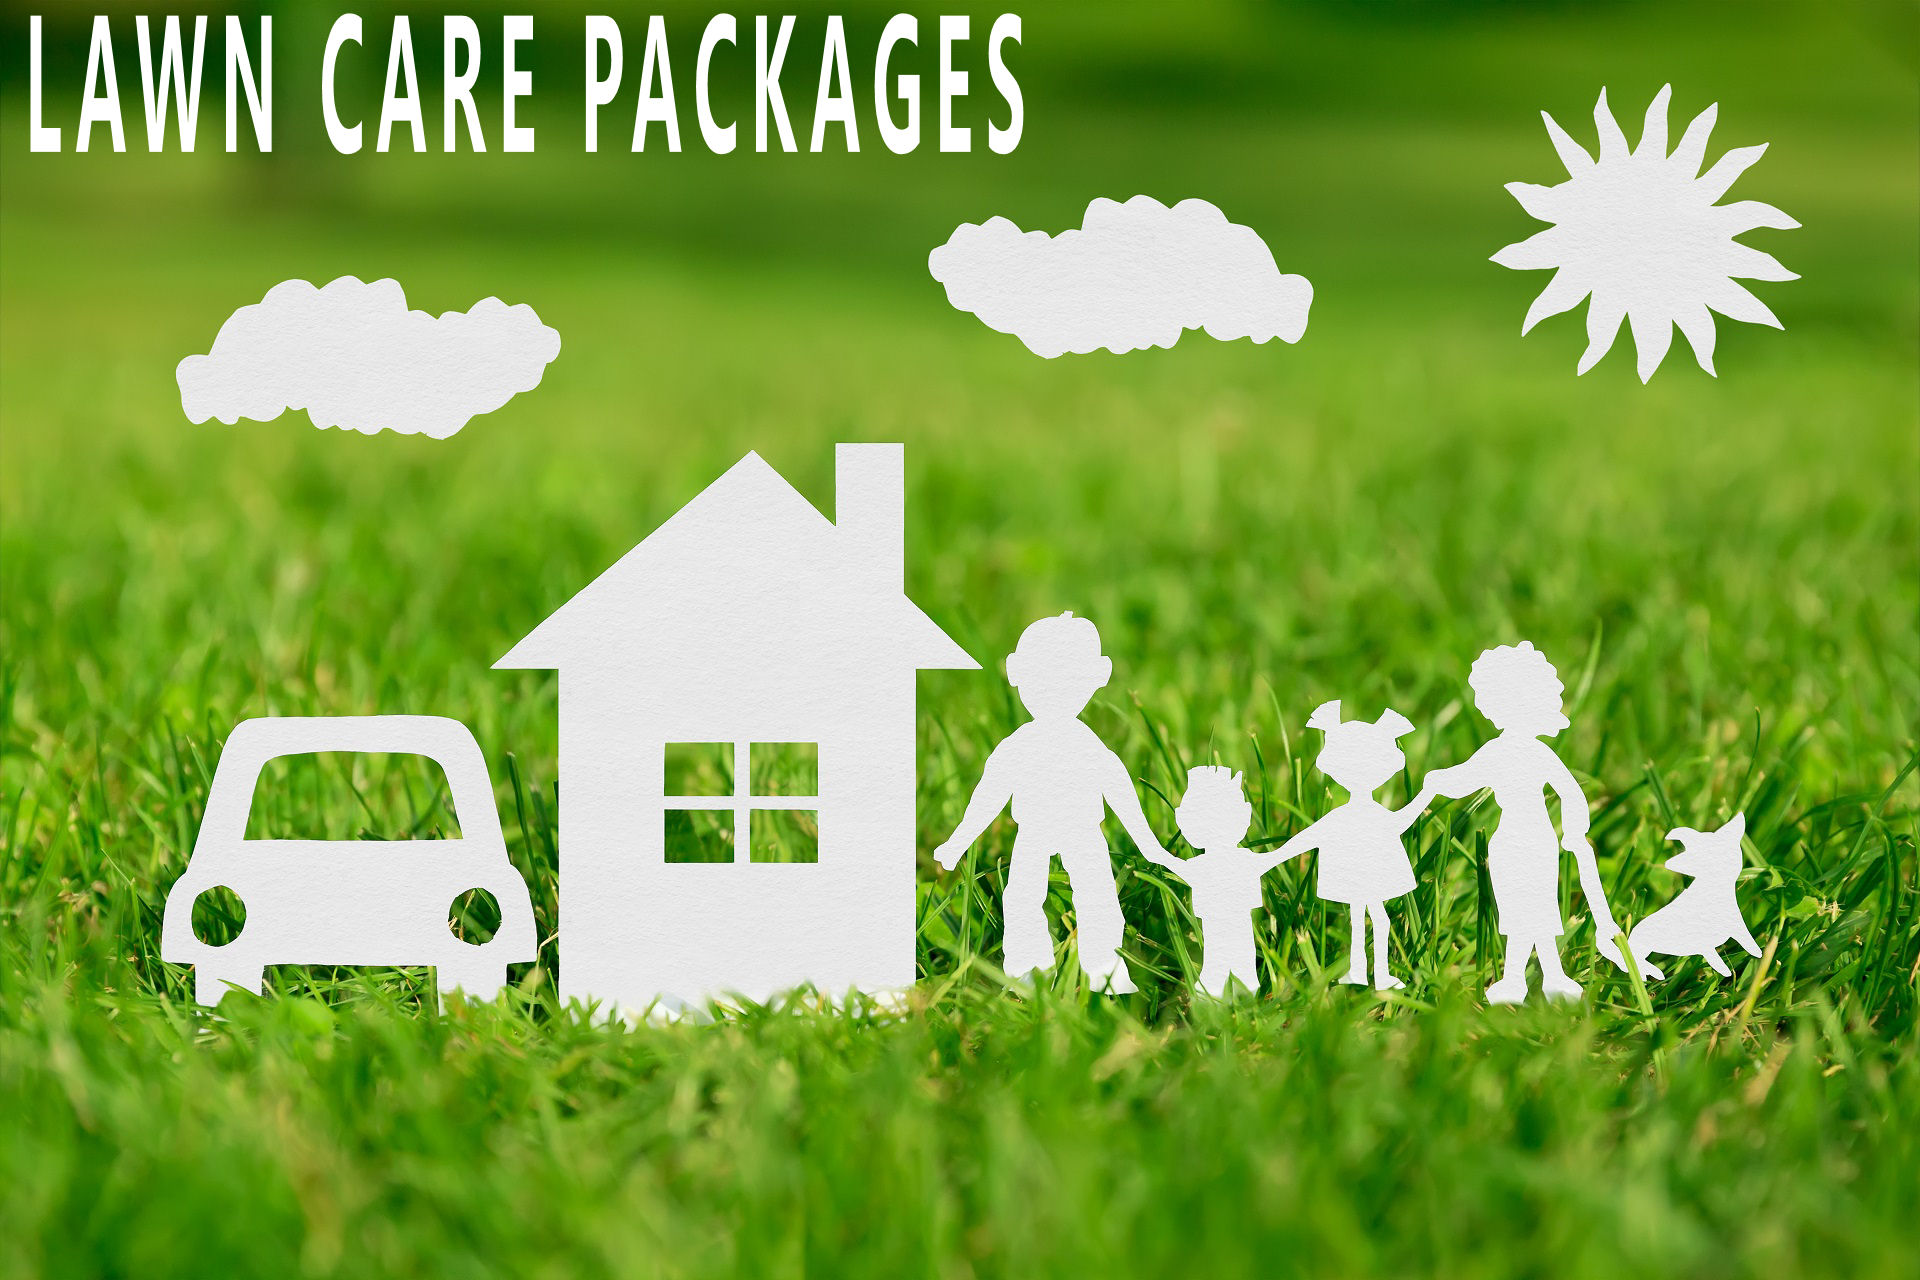 lawn care packages, weed control, fertilization, fertilizer, lawn service provider, akron ohio, richfield ohio, hinckley ohio, silver lake ohio, mogadore ohio, brinfield ohio, kent ohio, lawn care